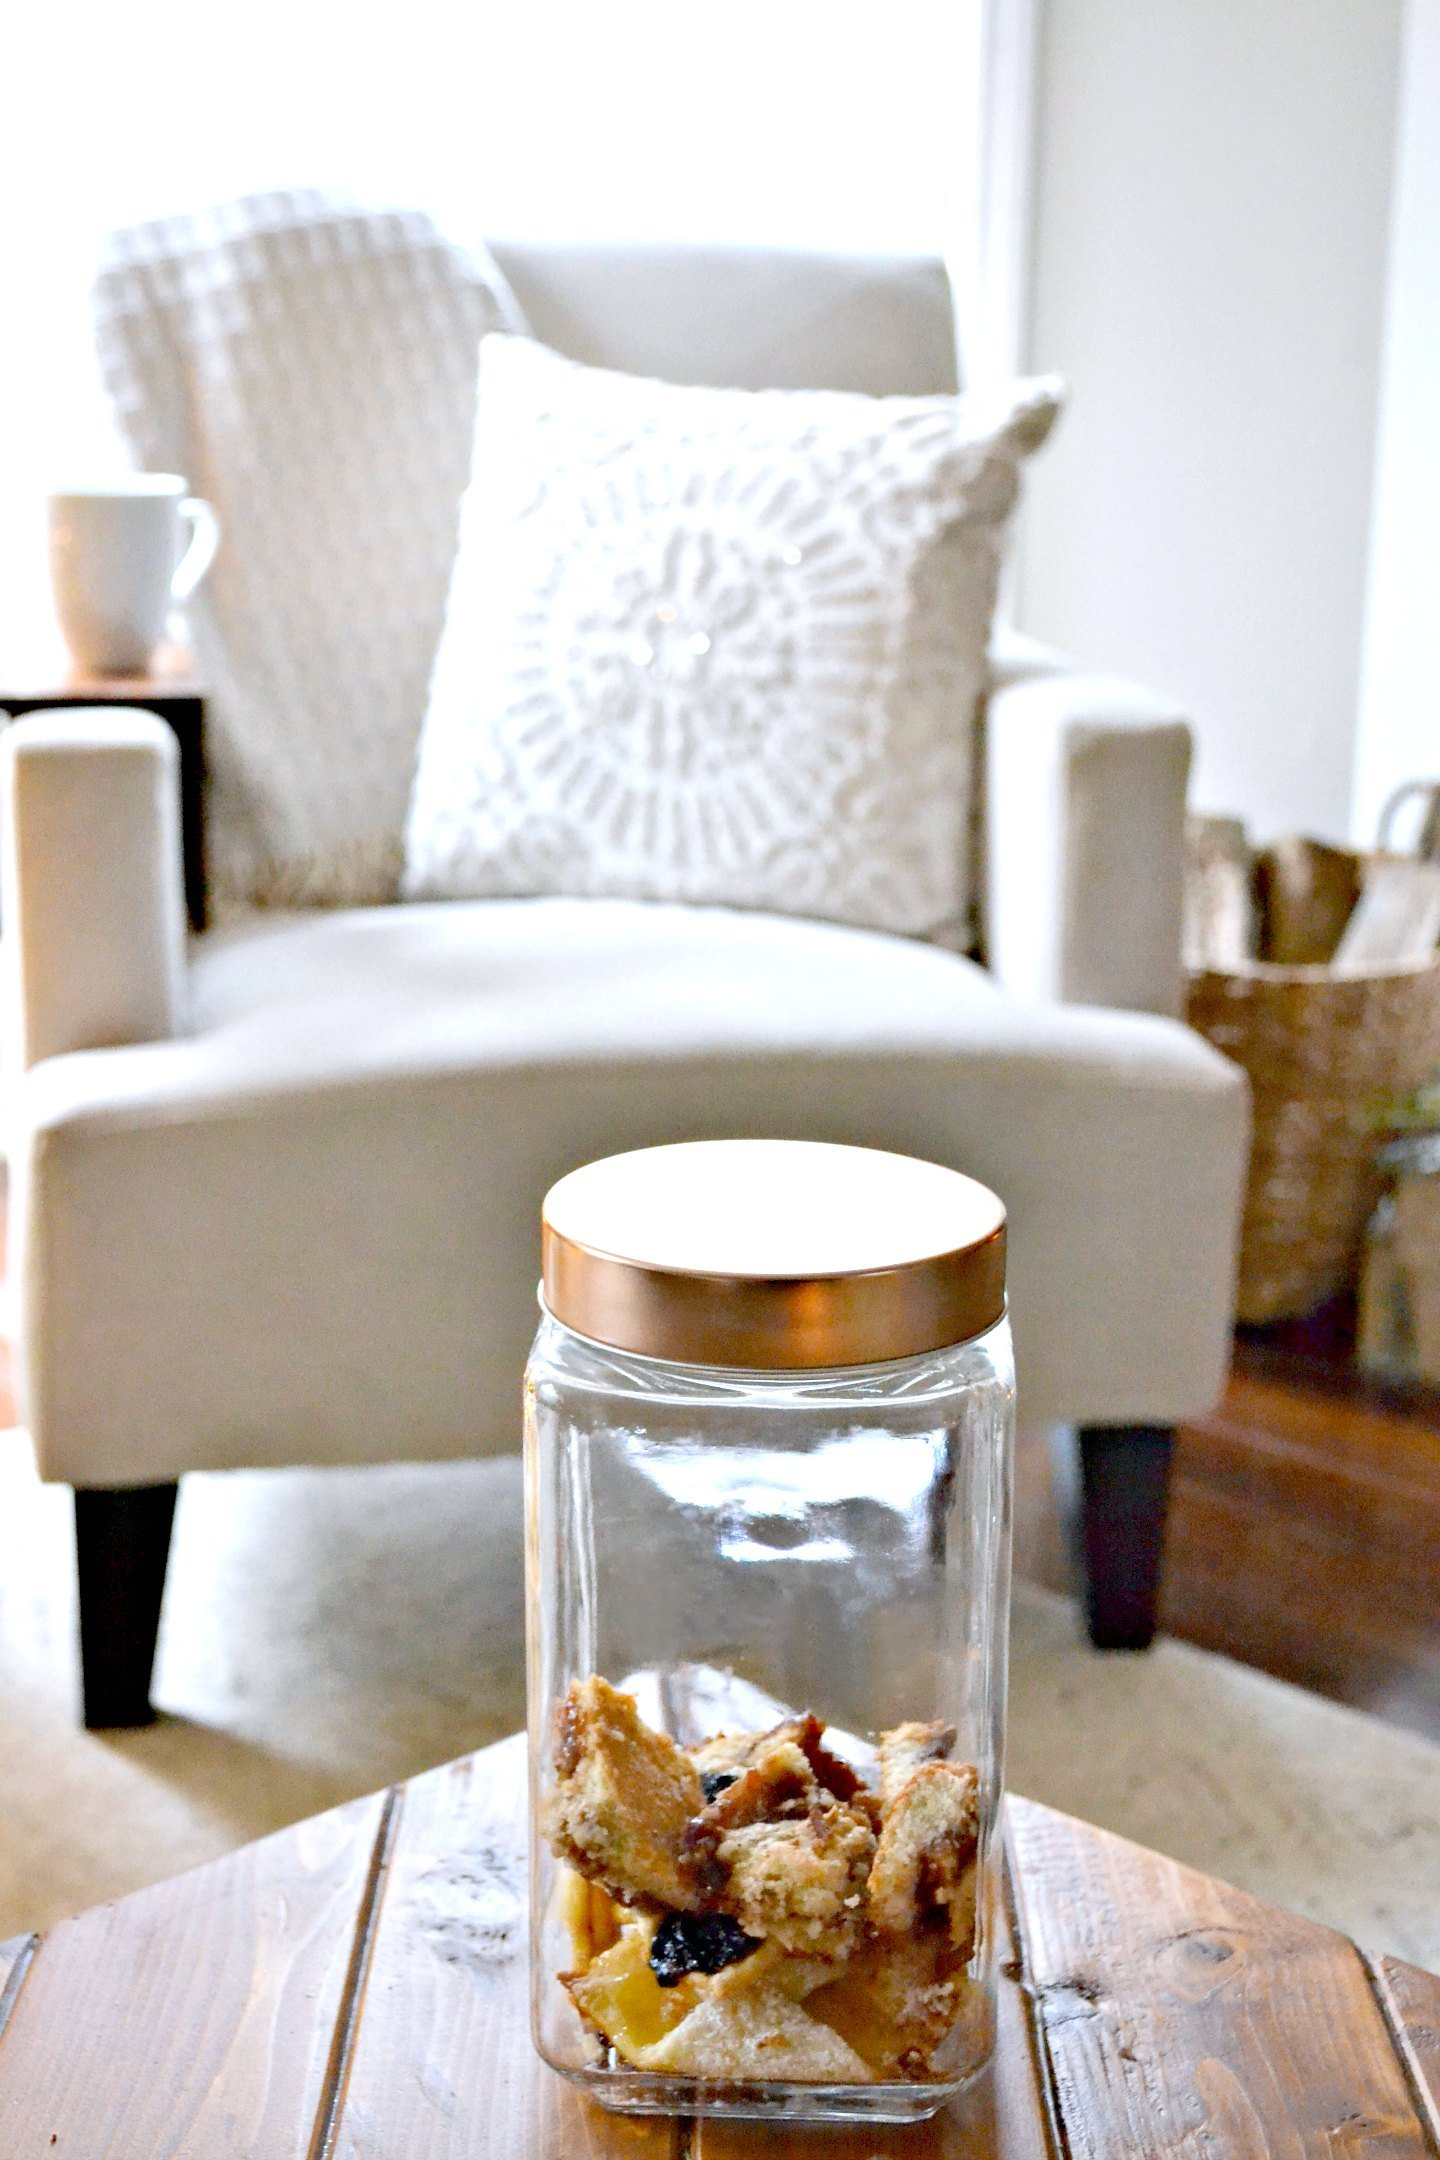 Cookie jar on coffee table